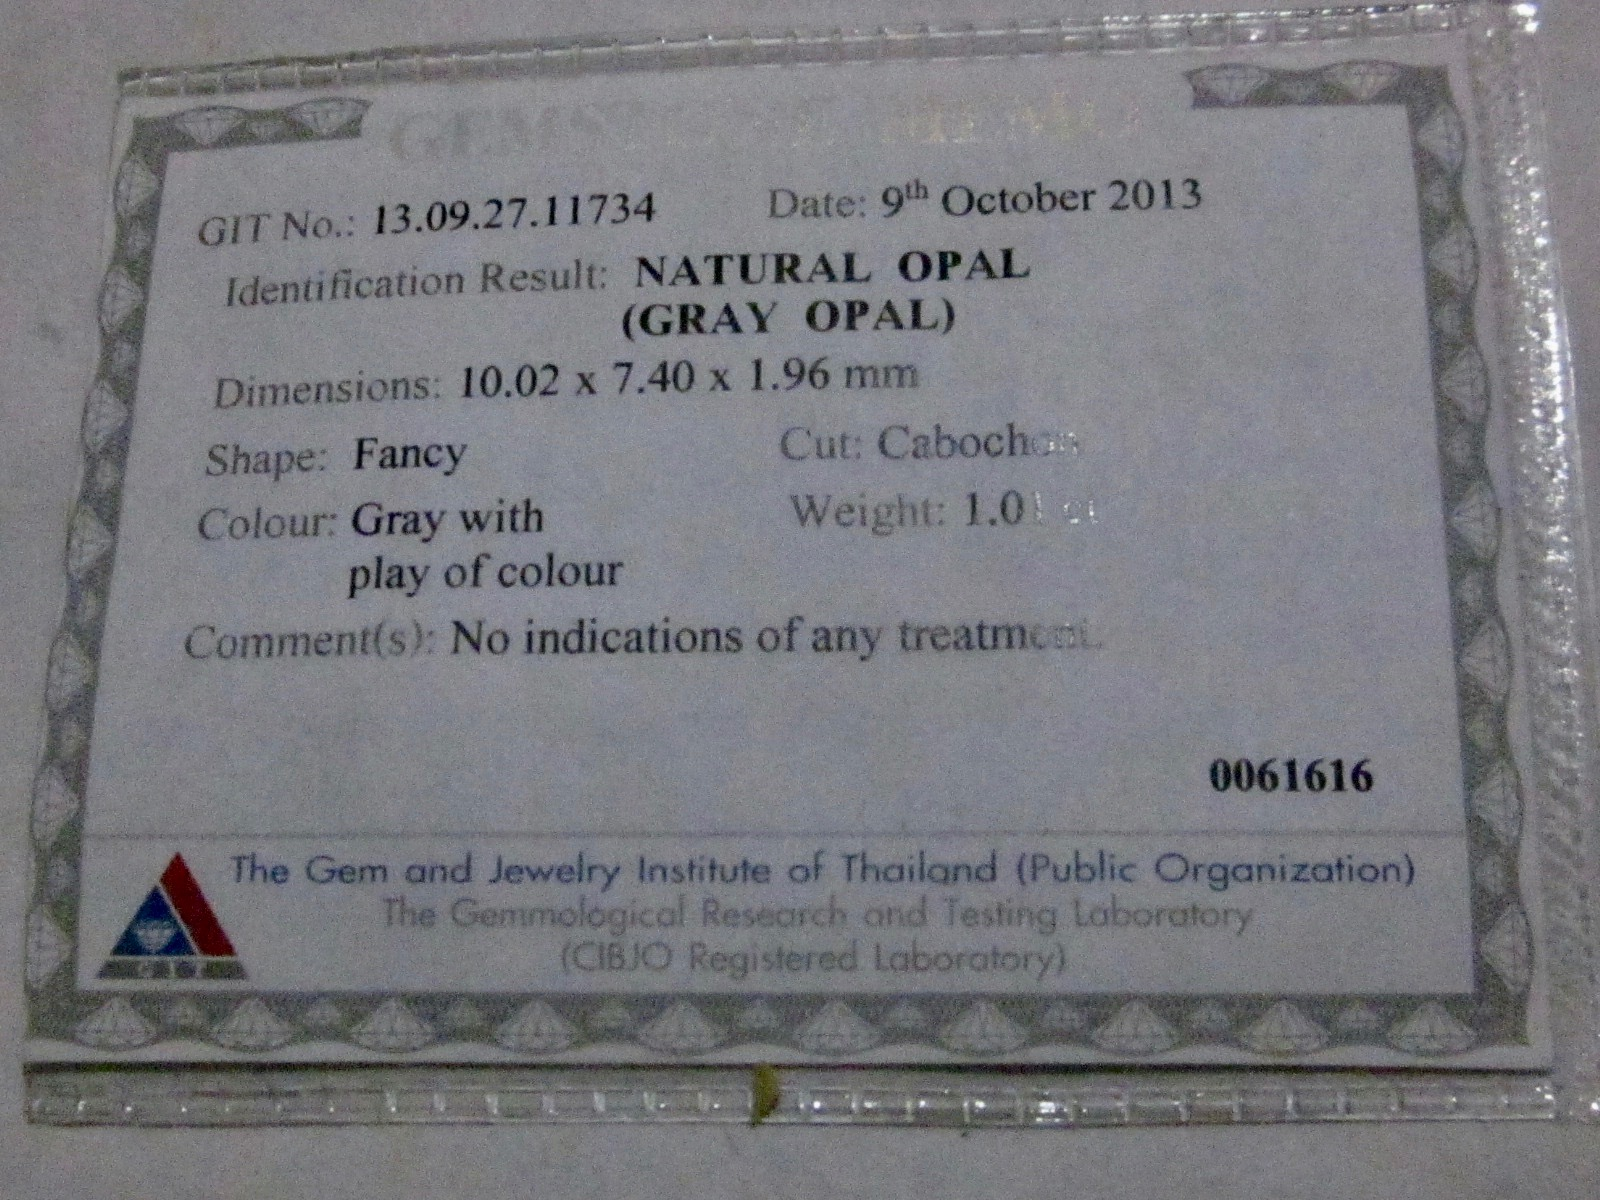 opal report, photograph opal lab report